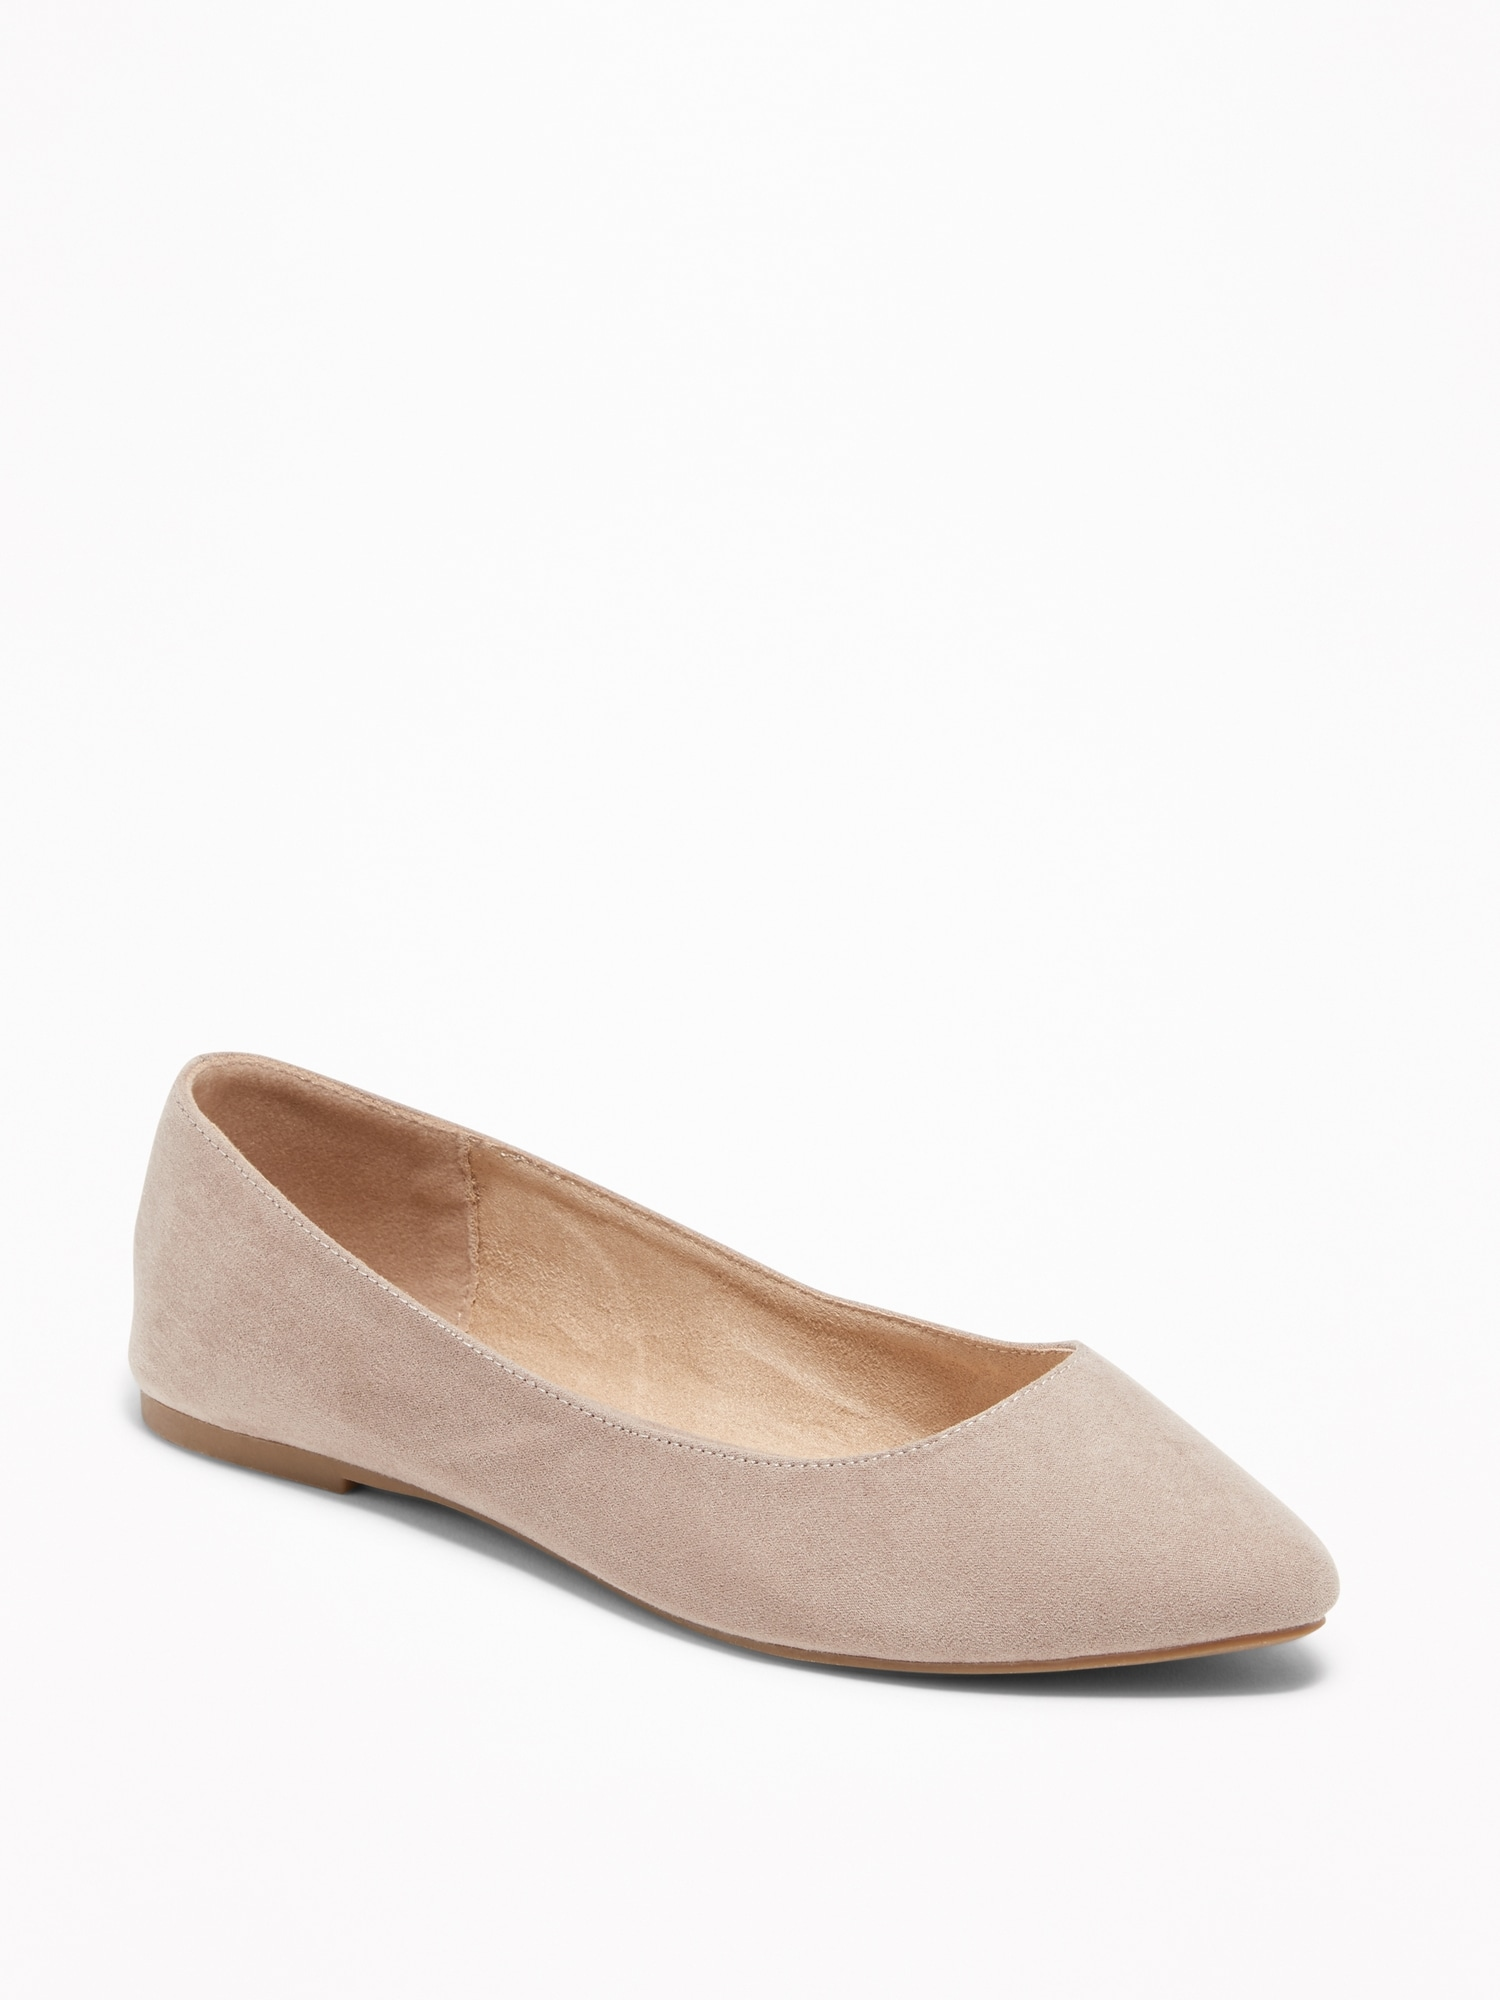 02a1e0c40f Faux-Suede Pointy Ballet Flats for Women